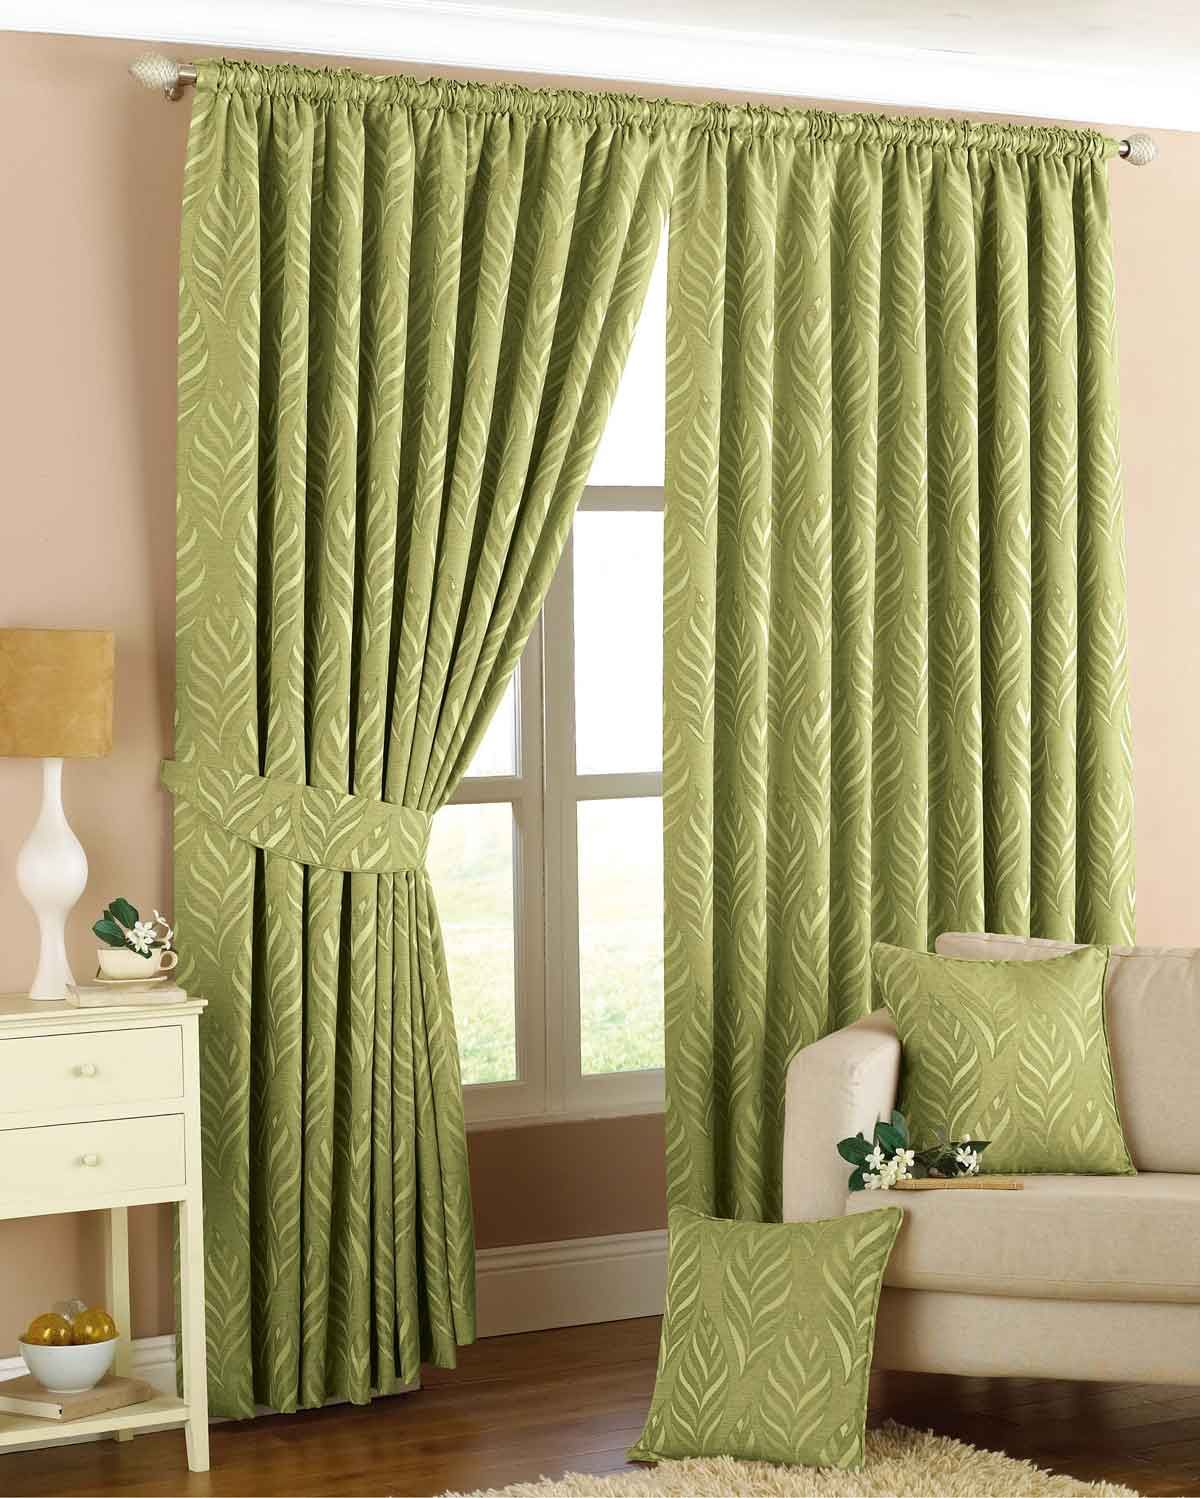 Narrow Leaf Ready Maded Lined Curtains Green